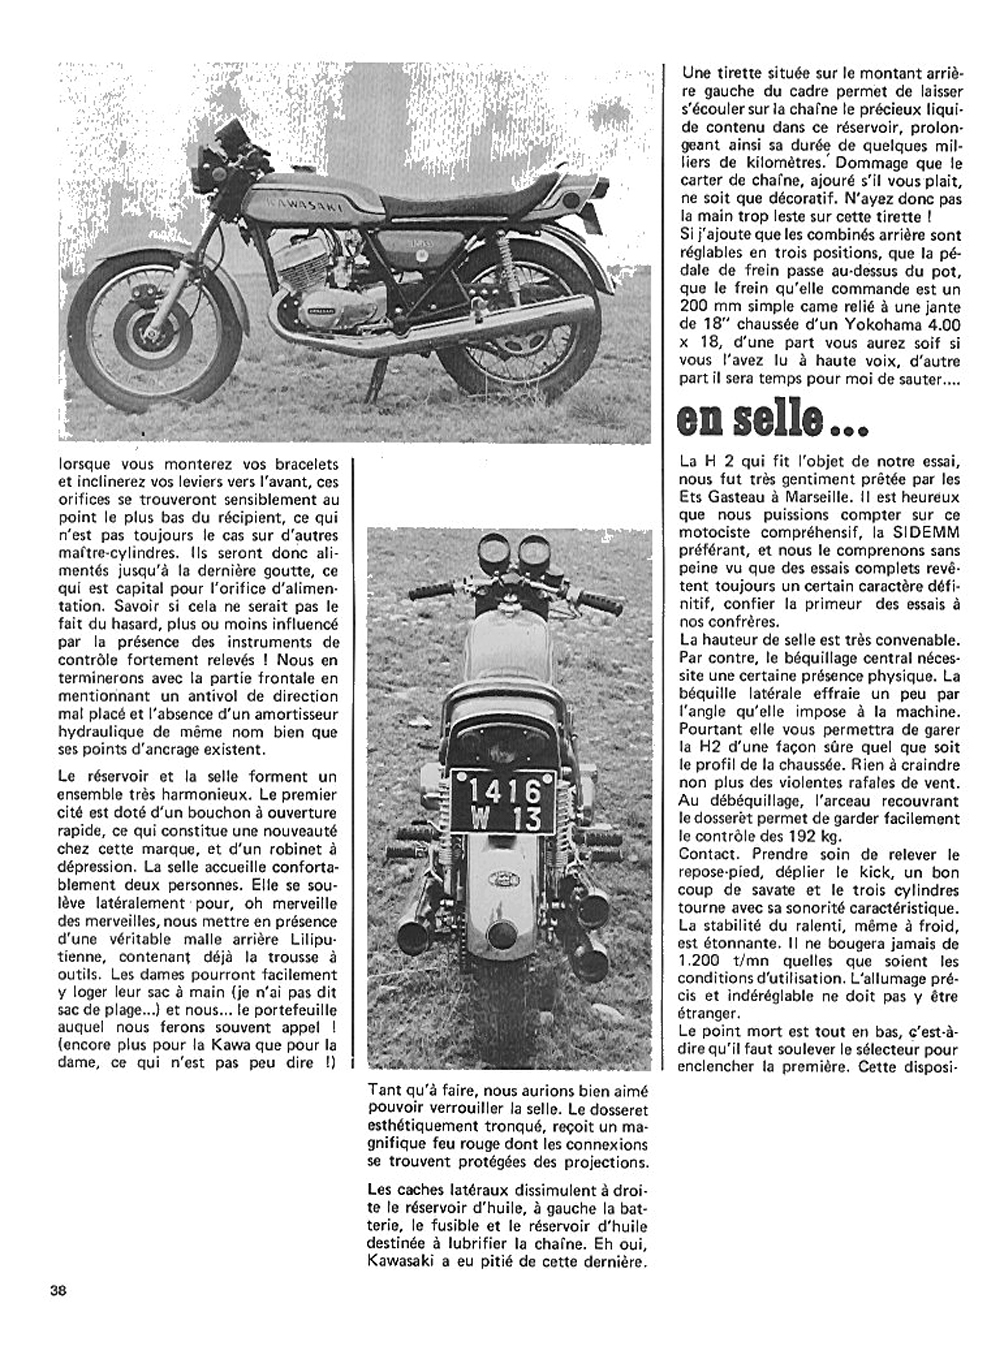 1972 Kawasaki H2 750 road test france 03.jpg